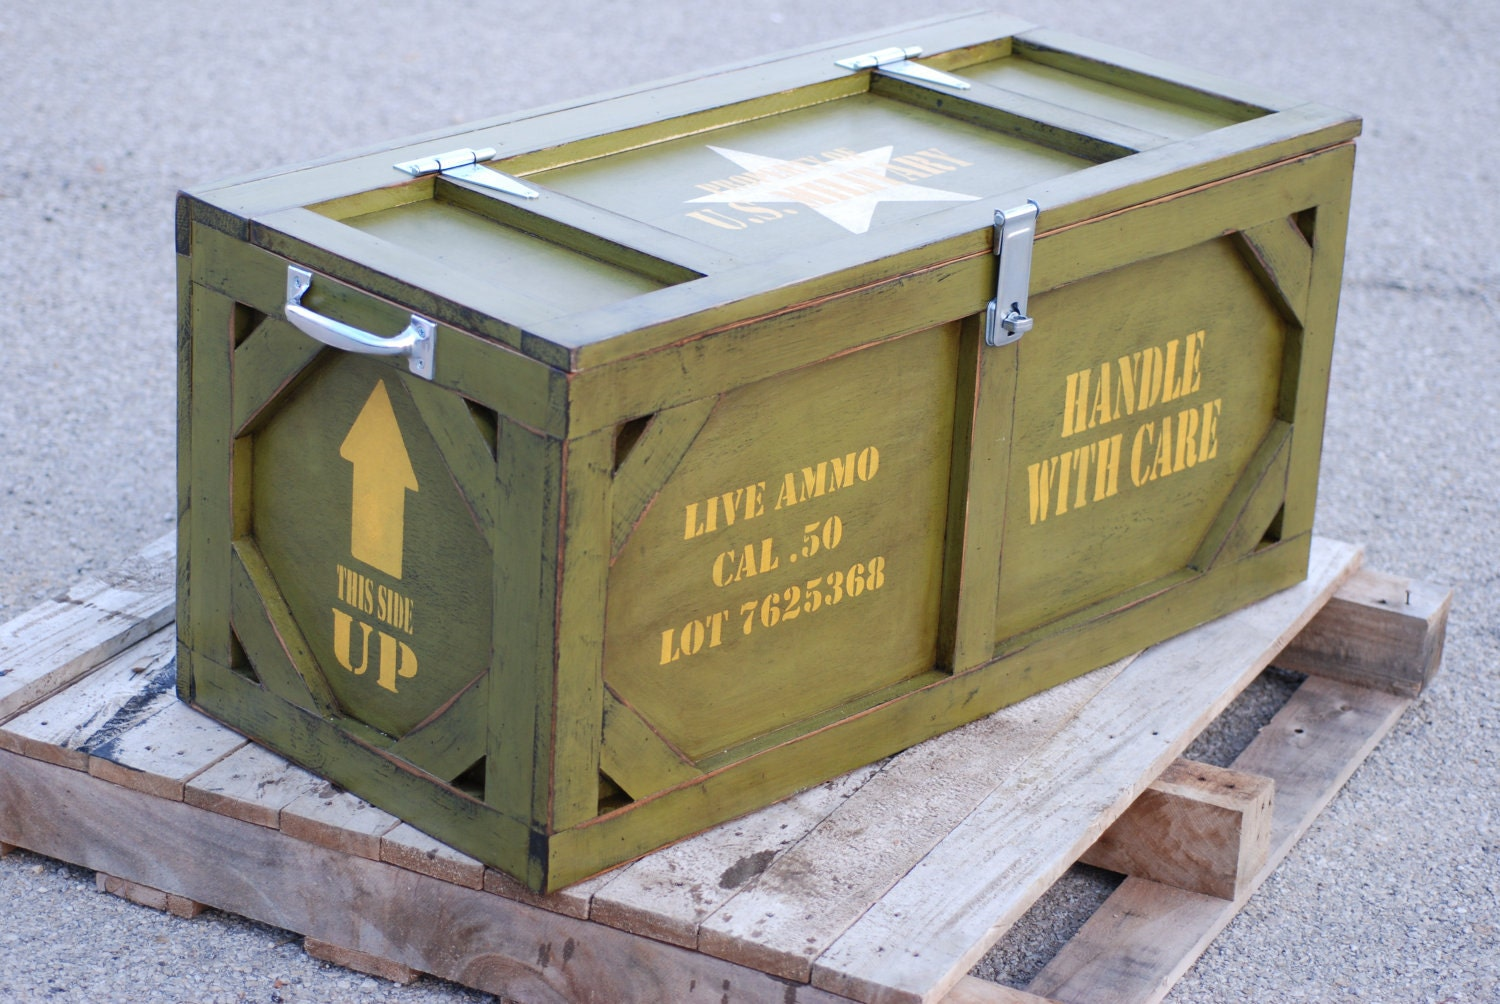 Toy box crate furniture military ammo box by ThePairOfSpades